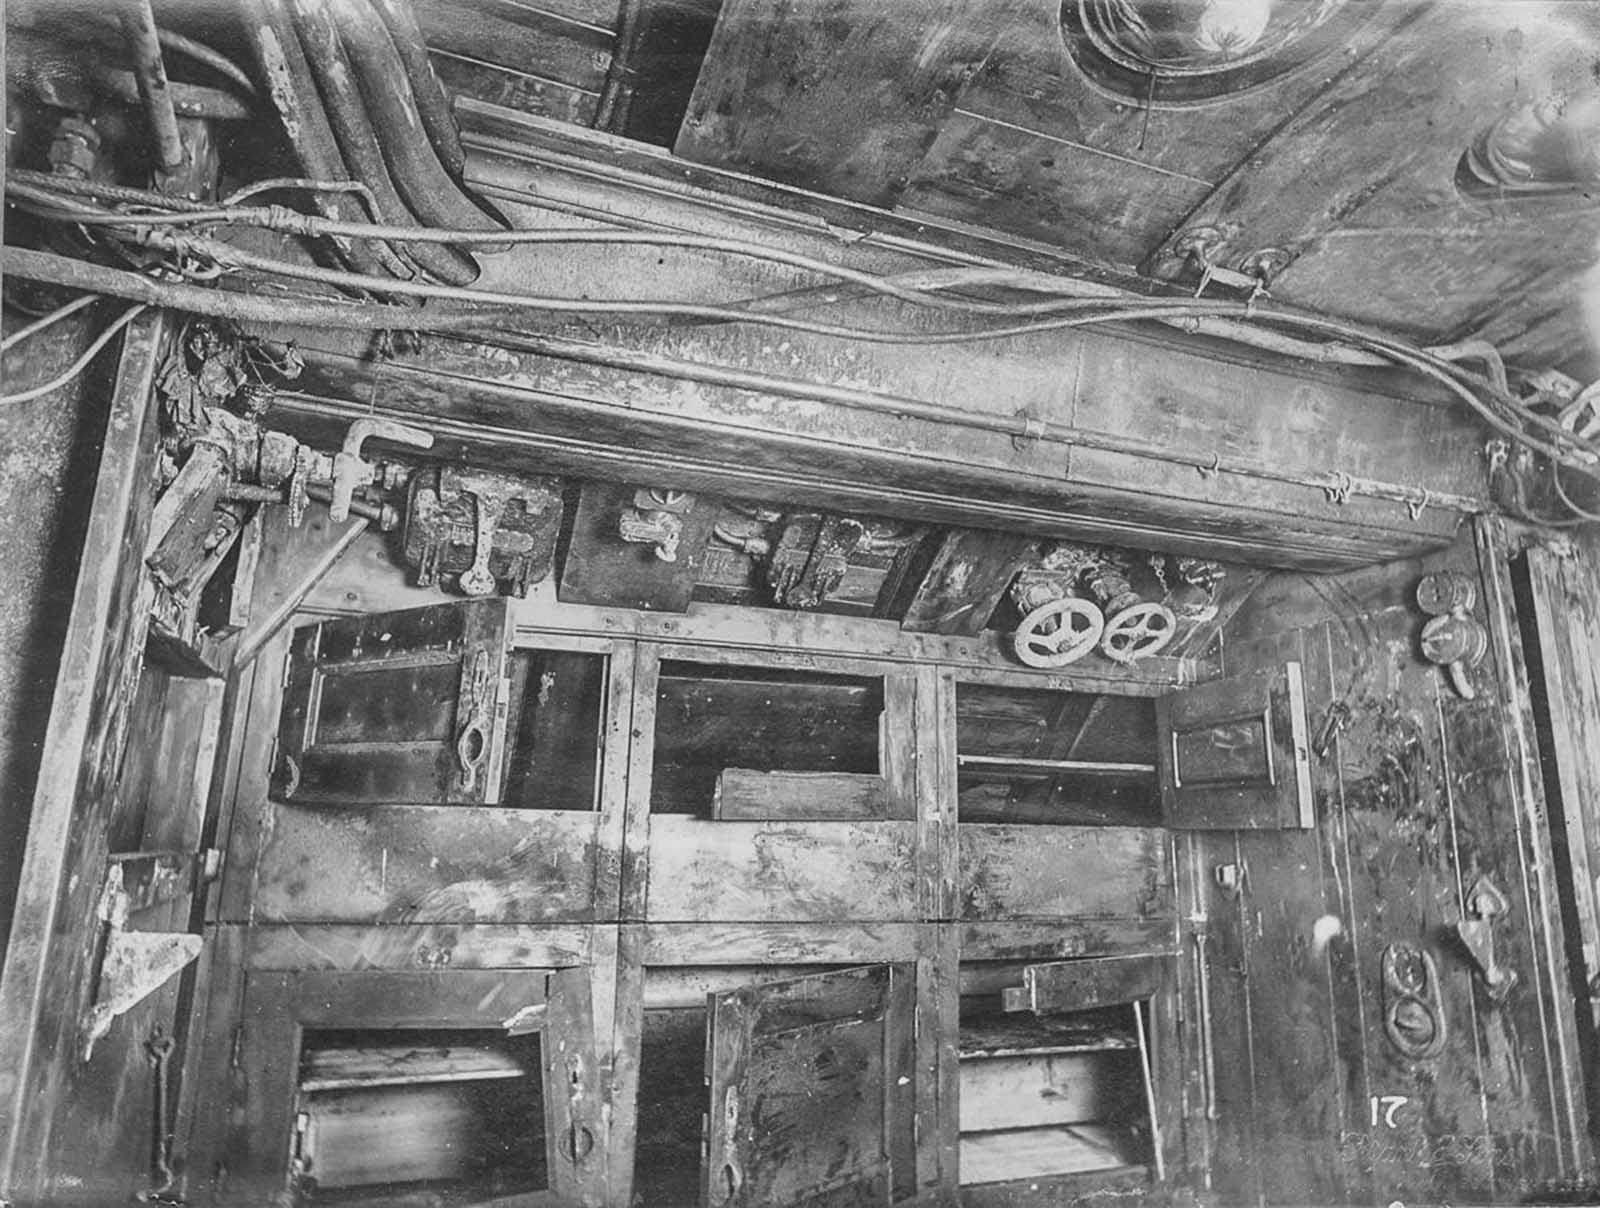 Third compartment, crew's lockers.